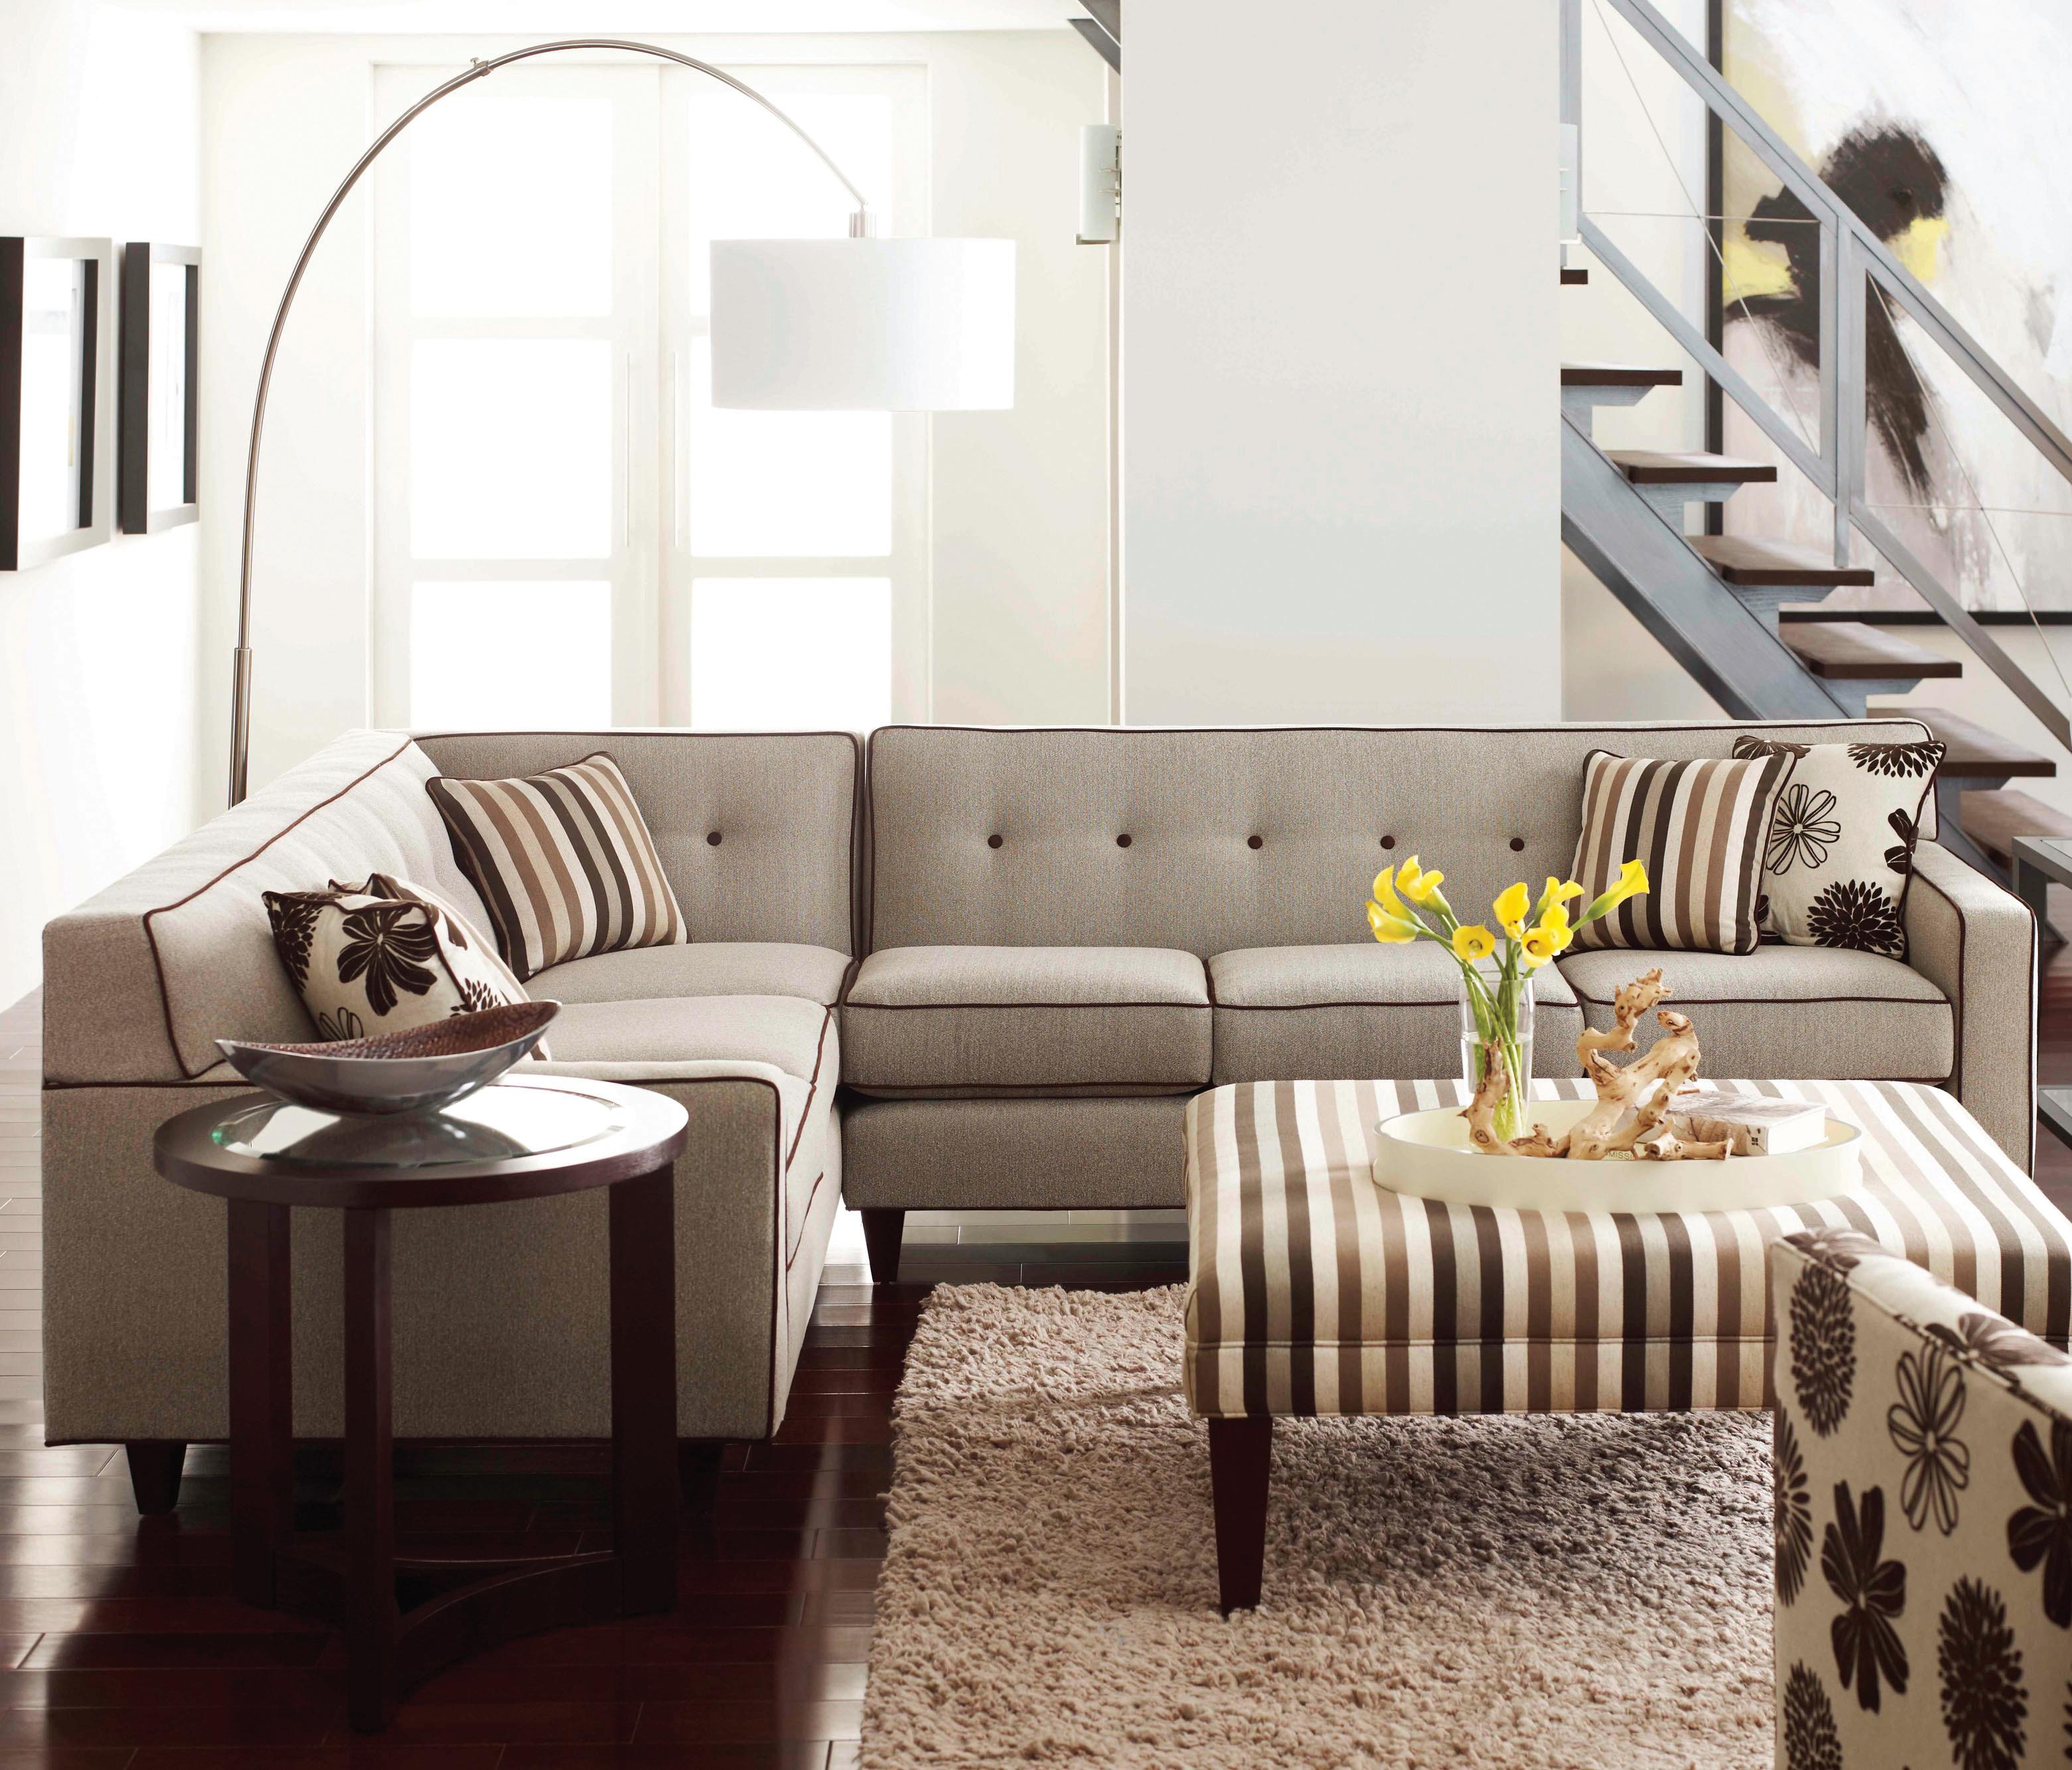 Rowe Dorset Corner Sectional with Tufted Back - Item Number: K520-118+117